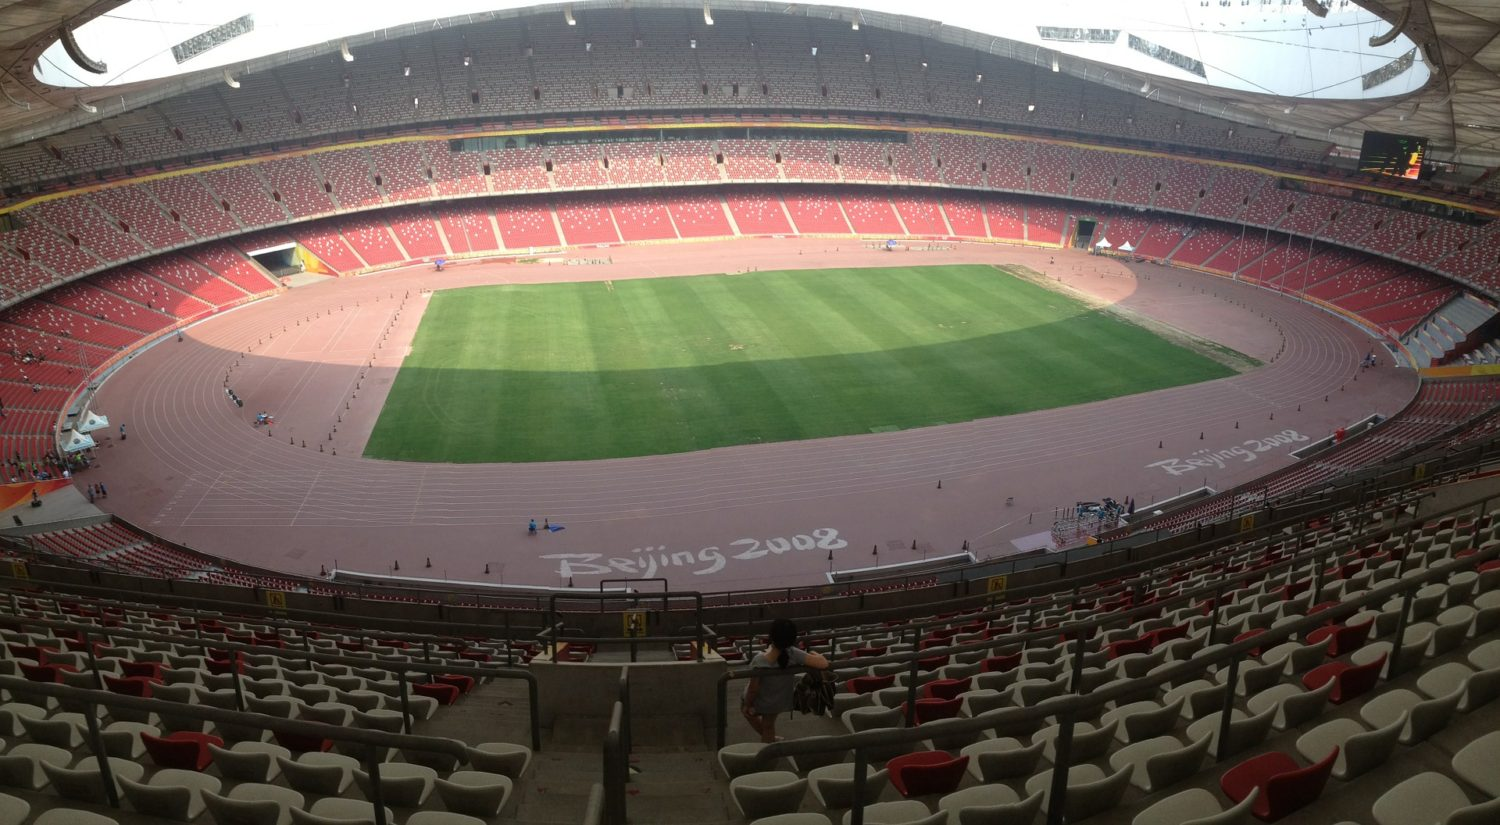 Top attractions and things to do in beijing china widest for The bird s nest stadium